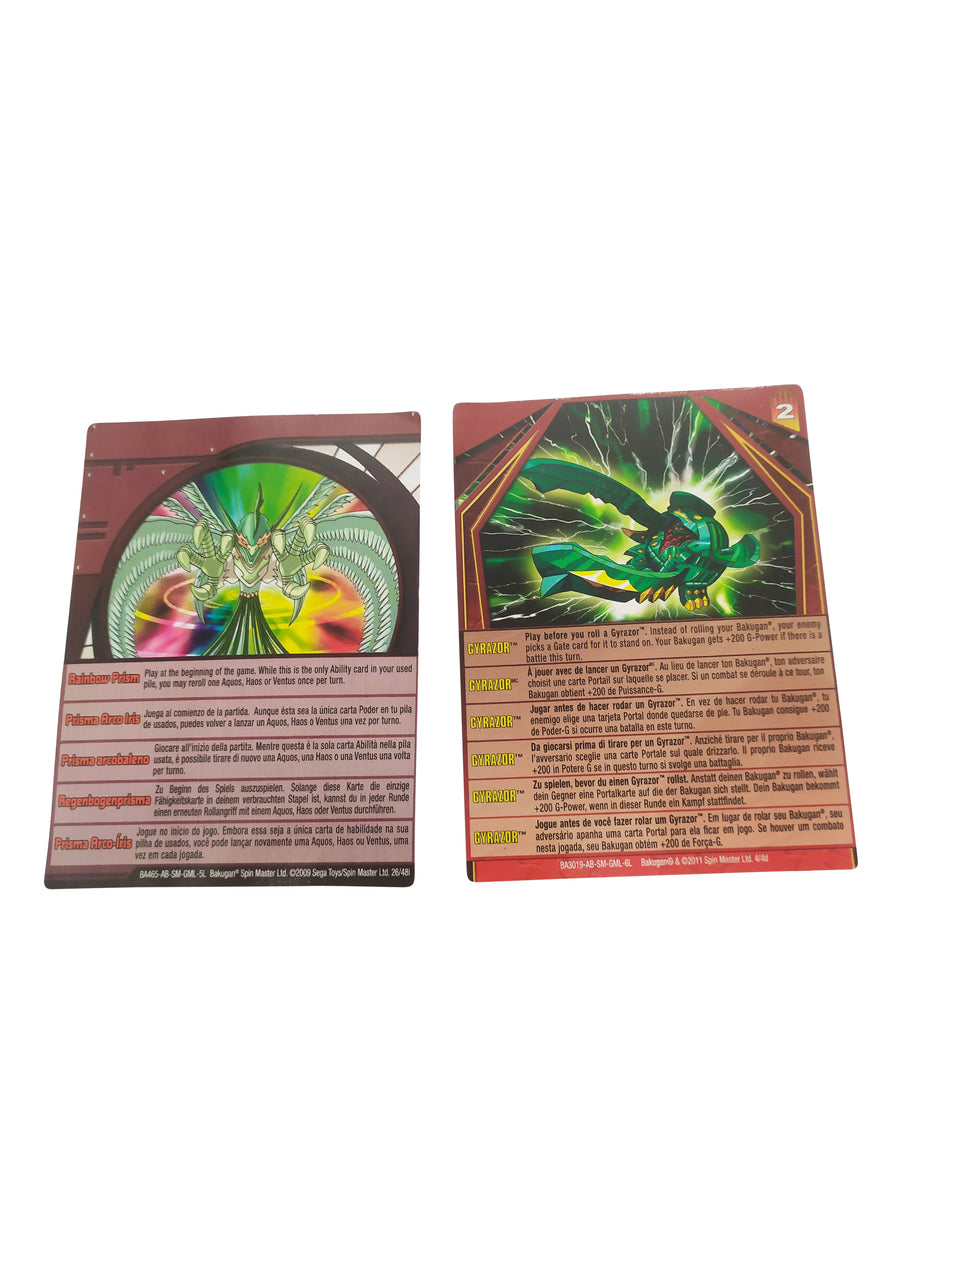 BAKUGAN BATTLE BRAWLERS - COLOR RED- gyrazor and rainbow prism